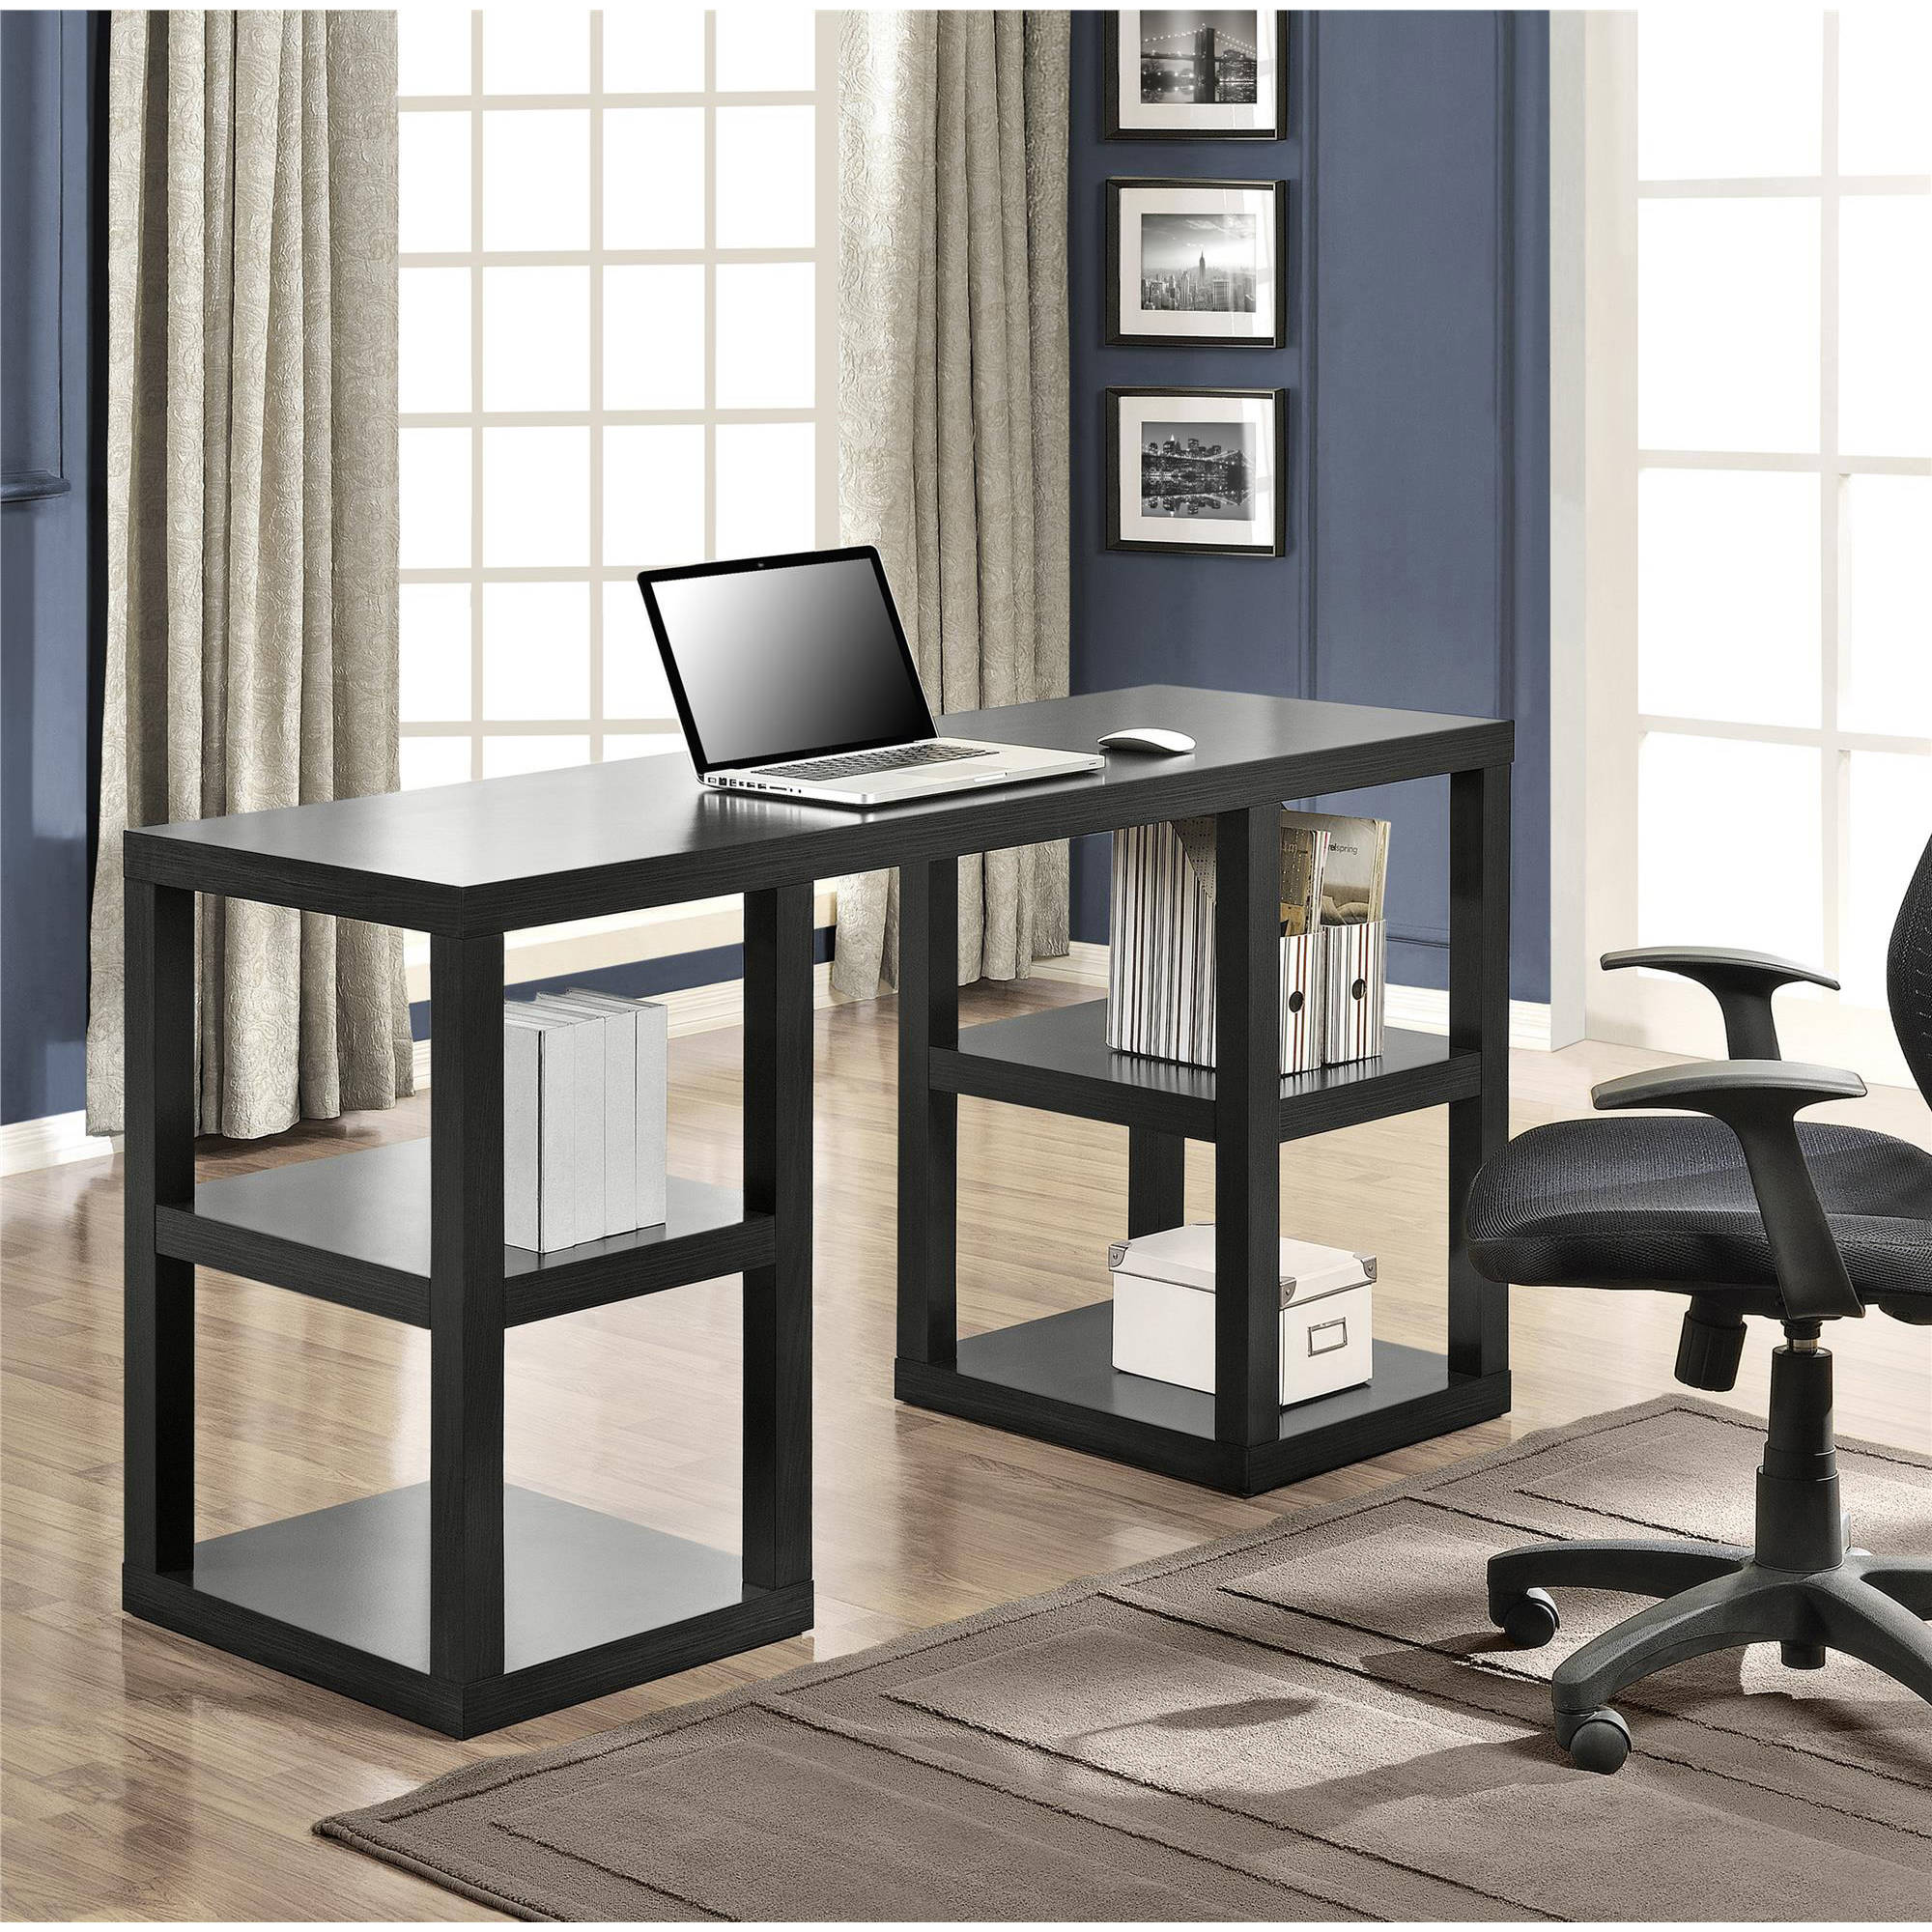 title | Black Home Office Desk